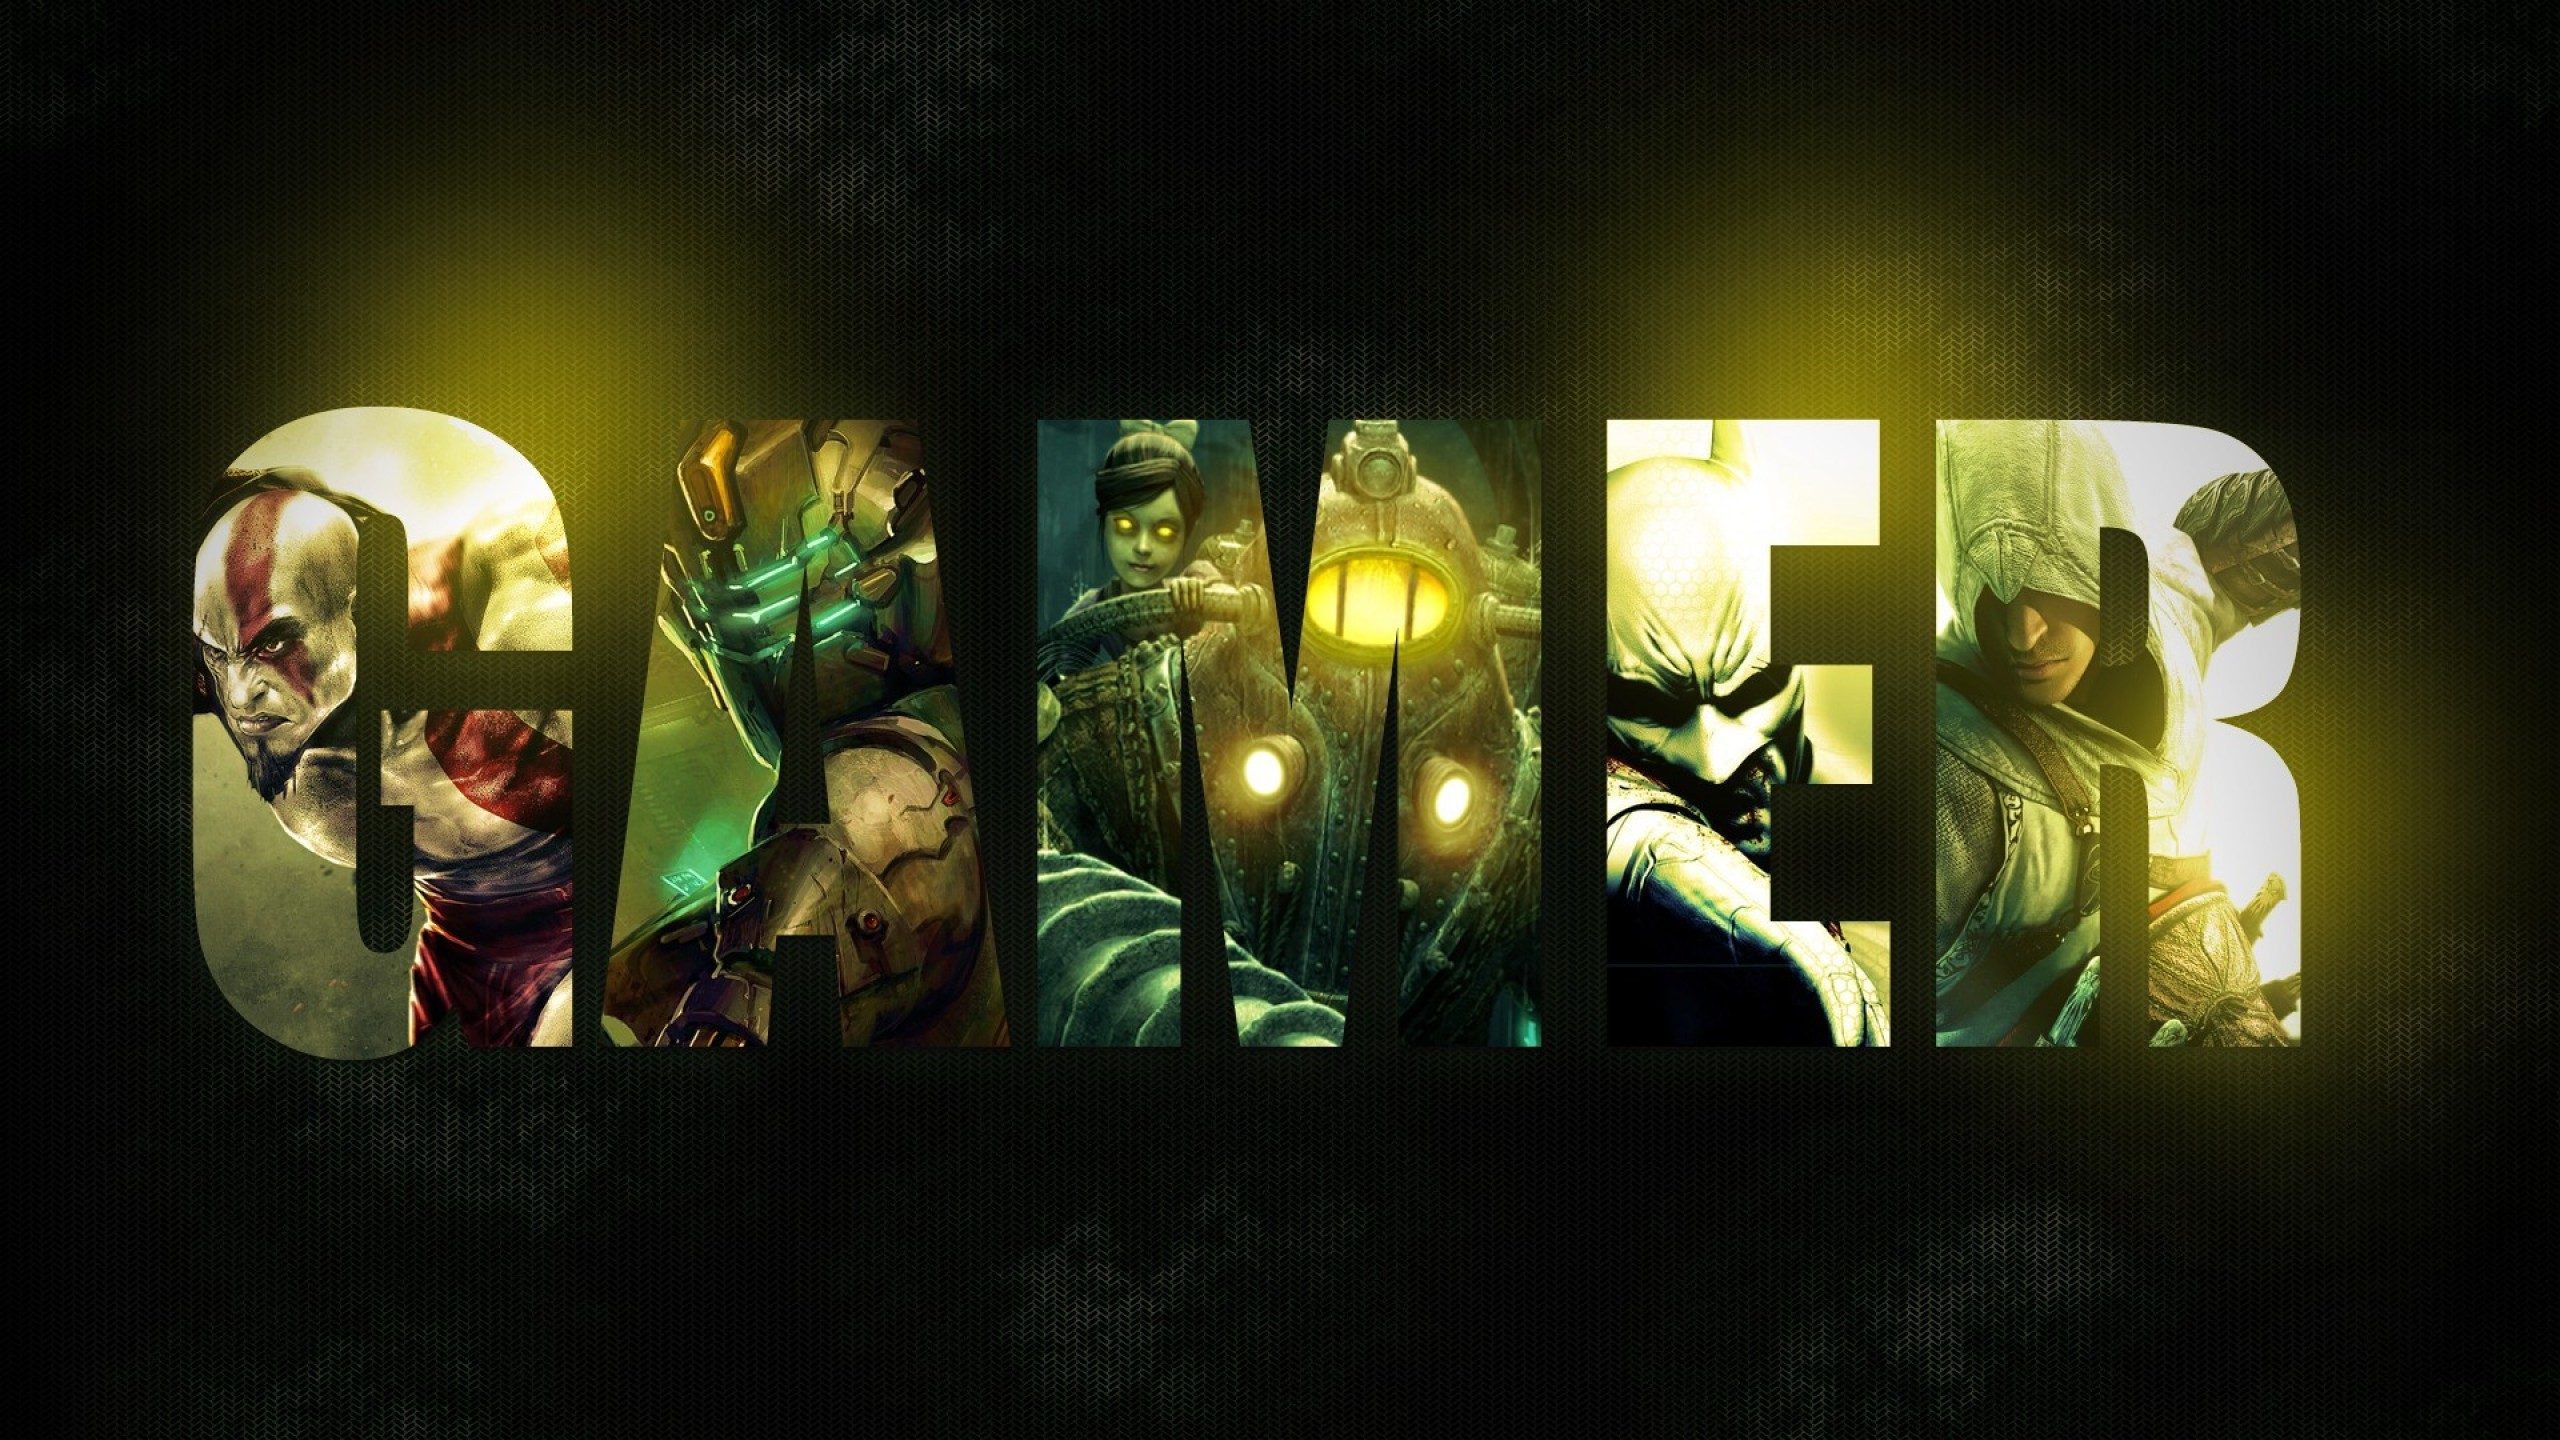 Gamers Wallpaper For Desktop And Mobiles Youtube Cover Photo Hd Wallpaper Wallpapers Net